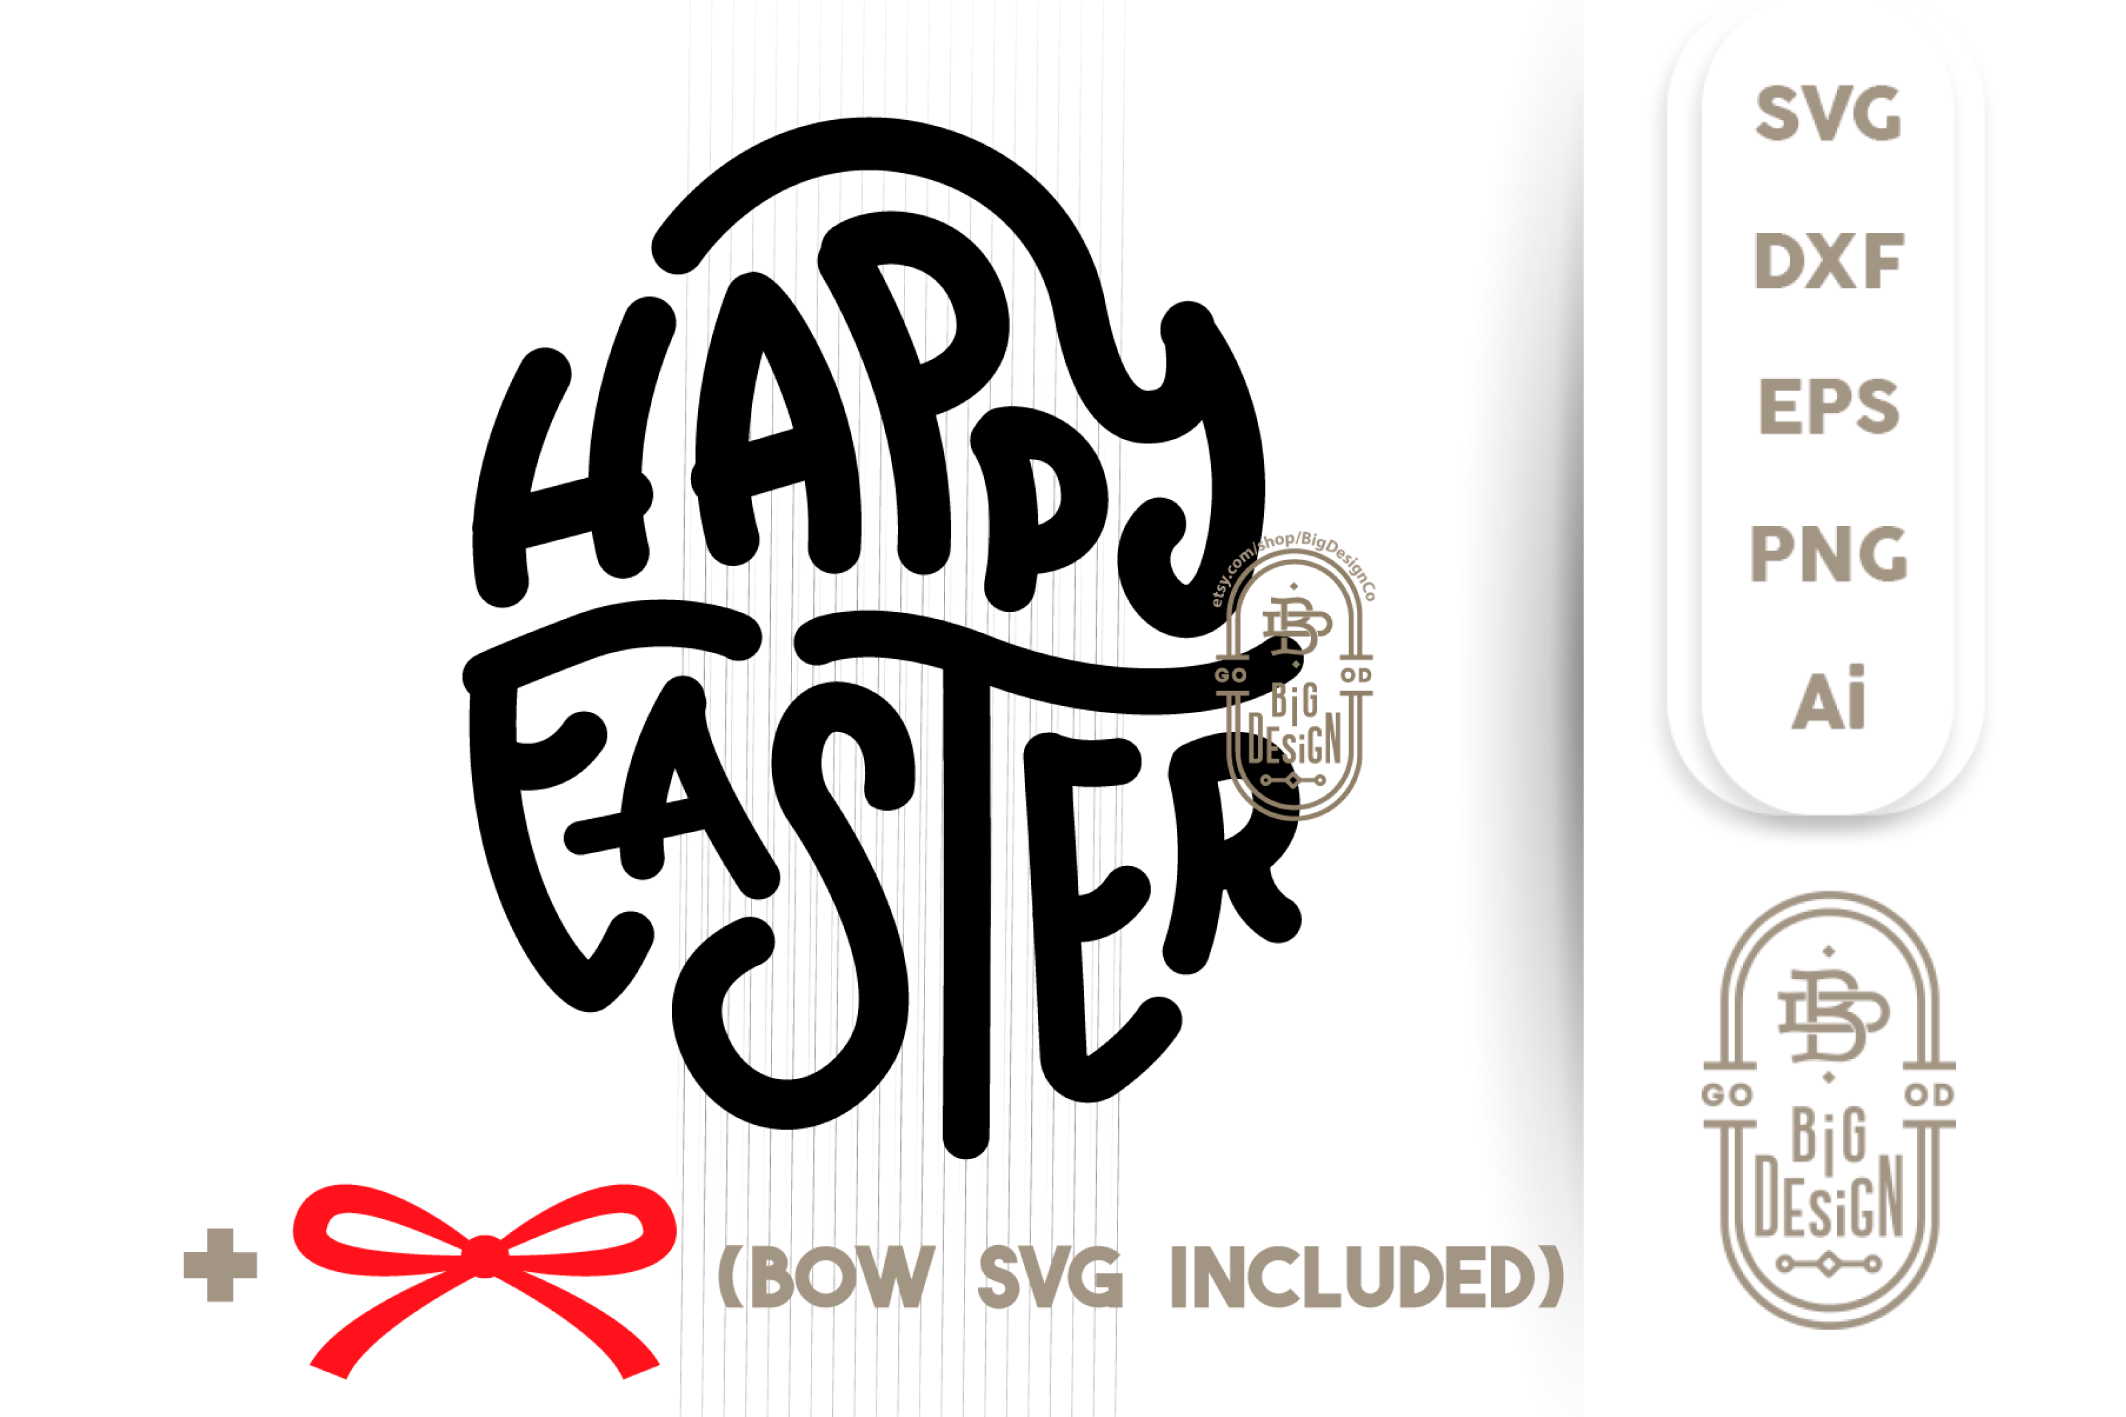 Happy Easter SVG - Easter Saying SVG Cut File example image 4